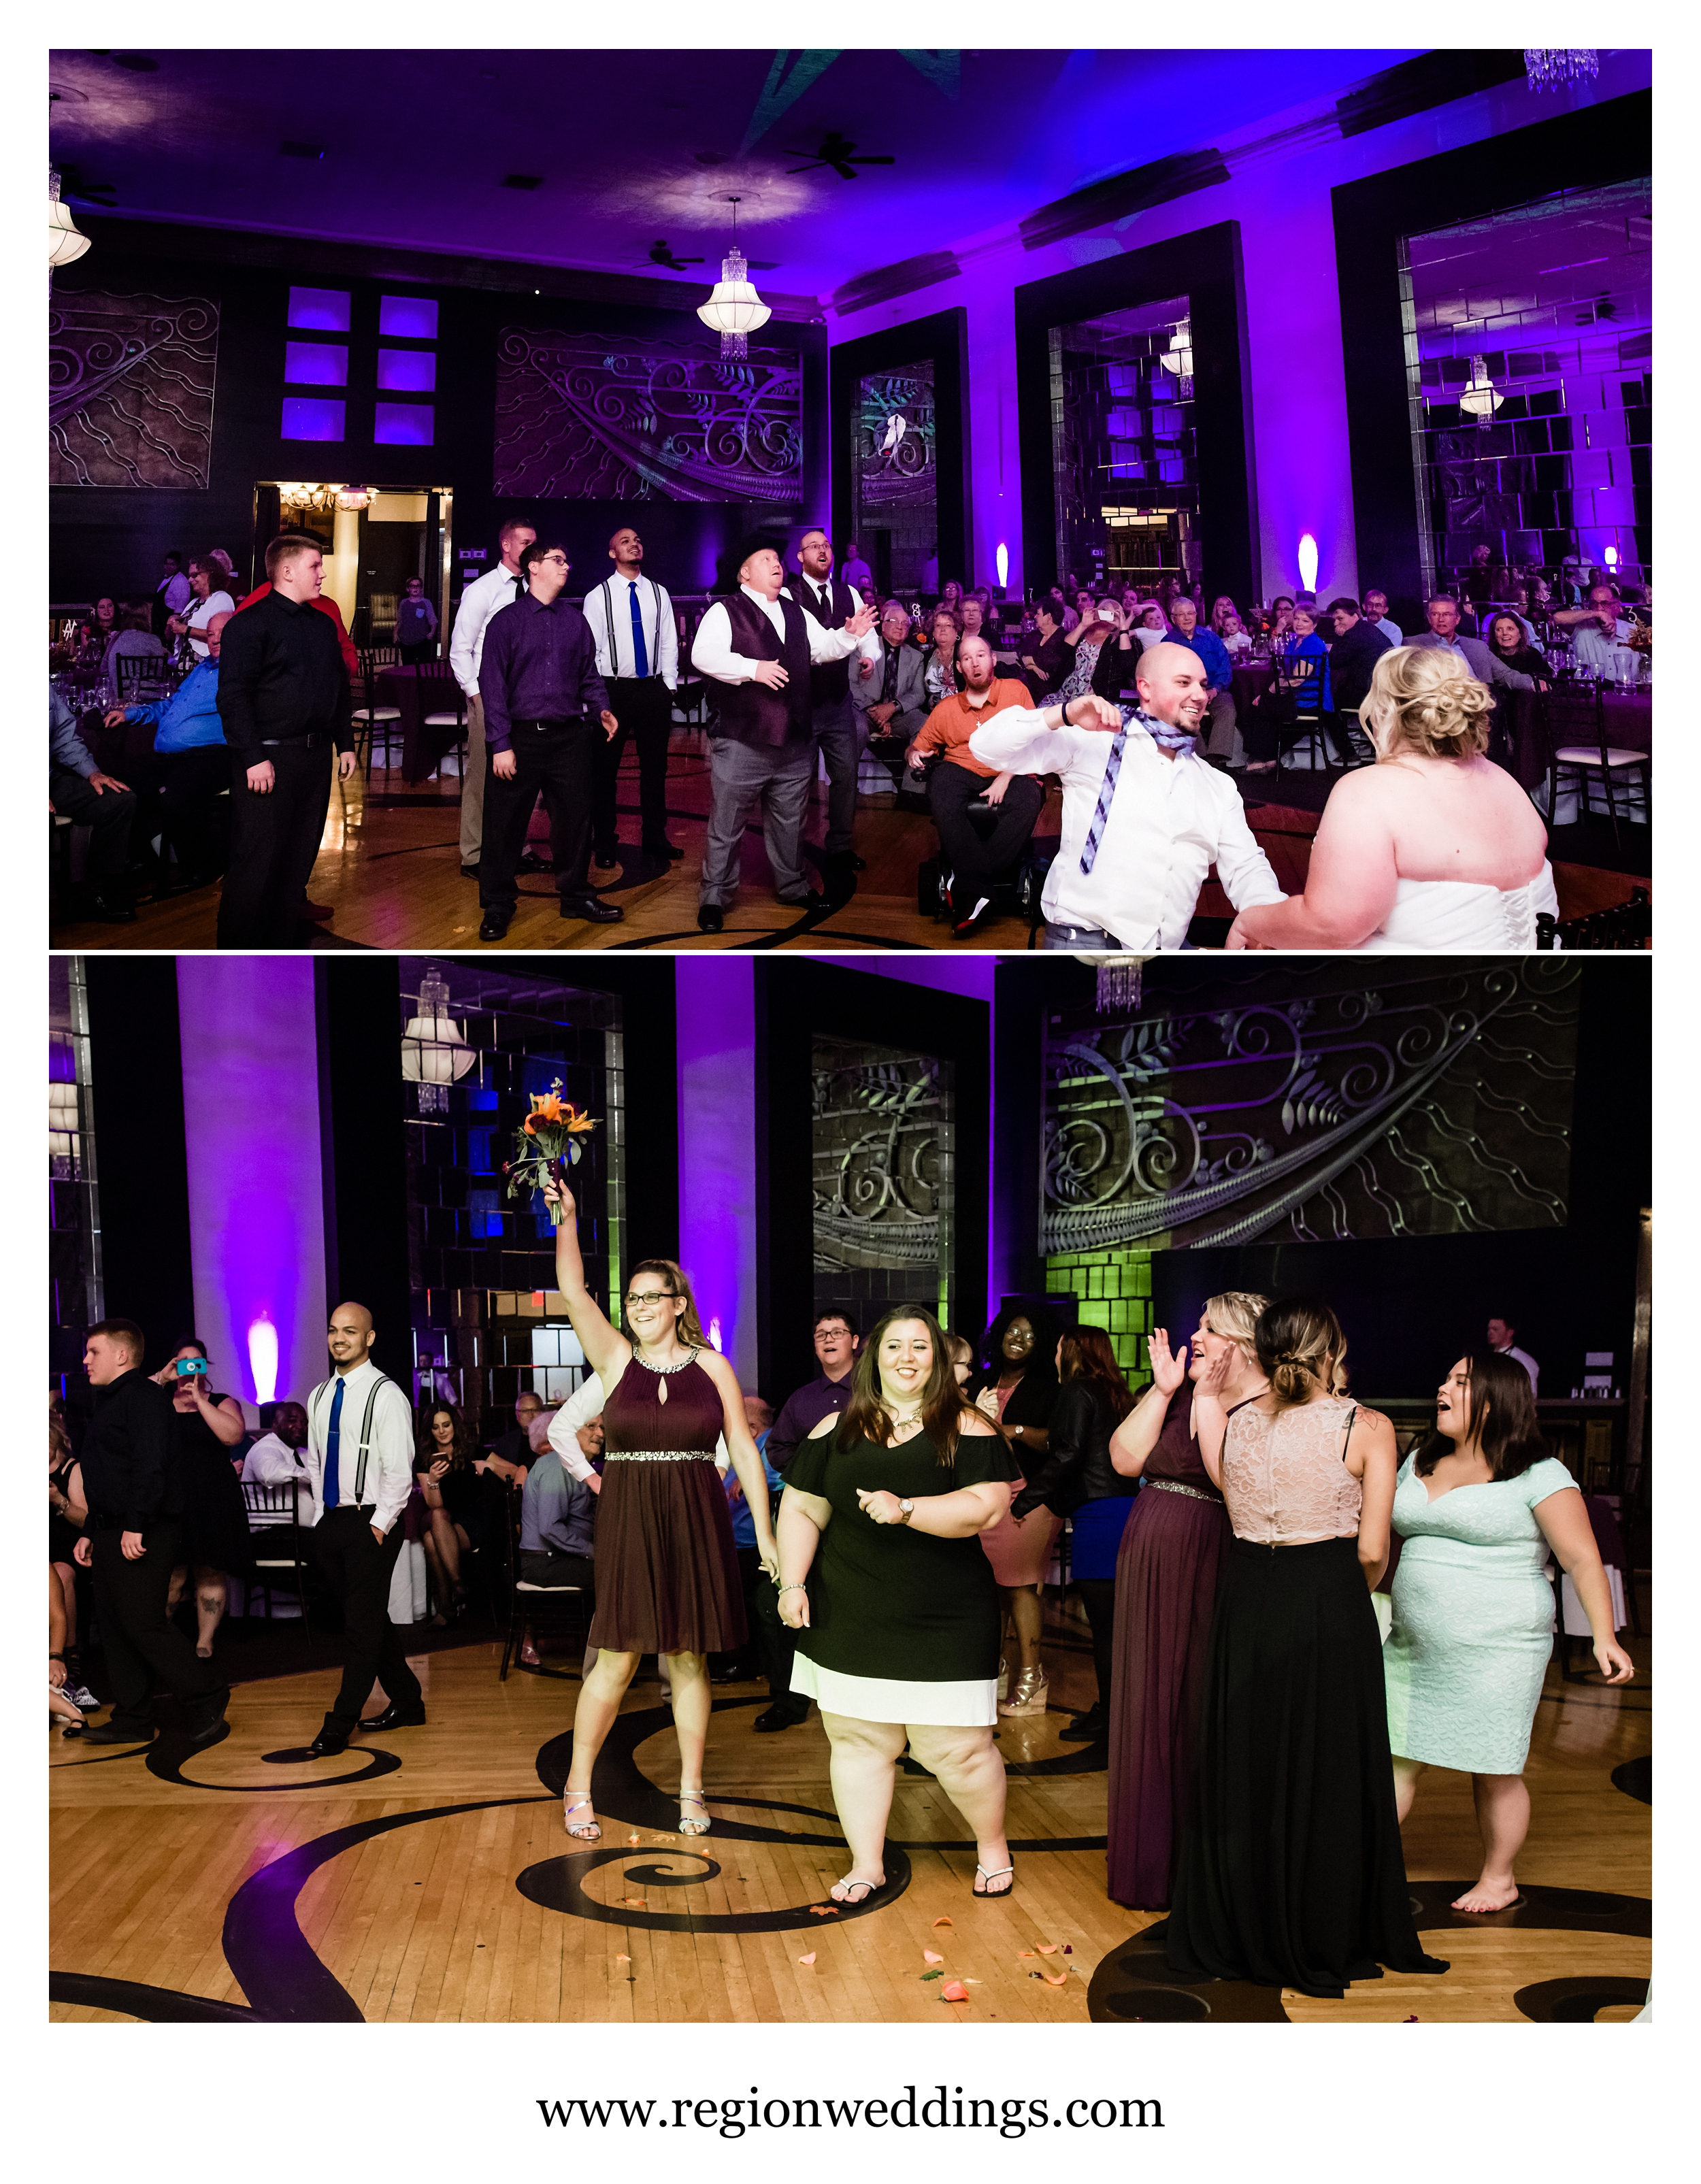 Bouquet and garter toss at The Allure.